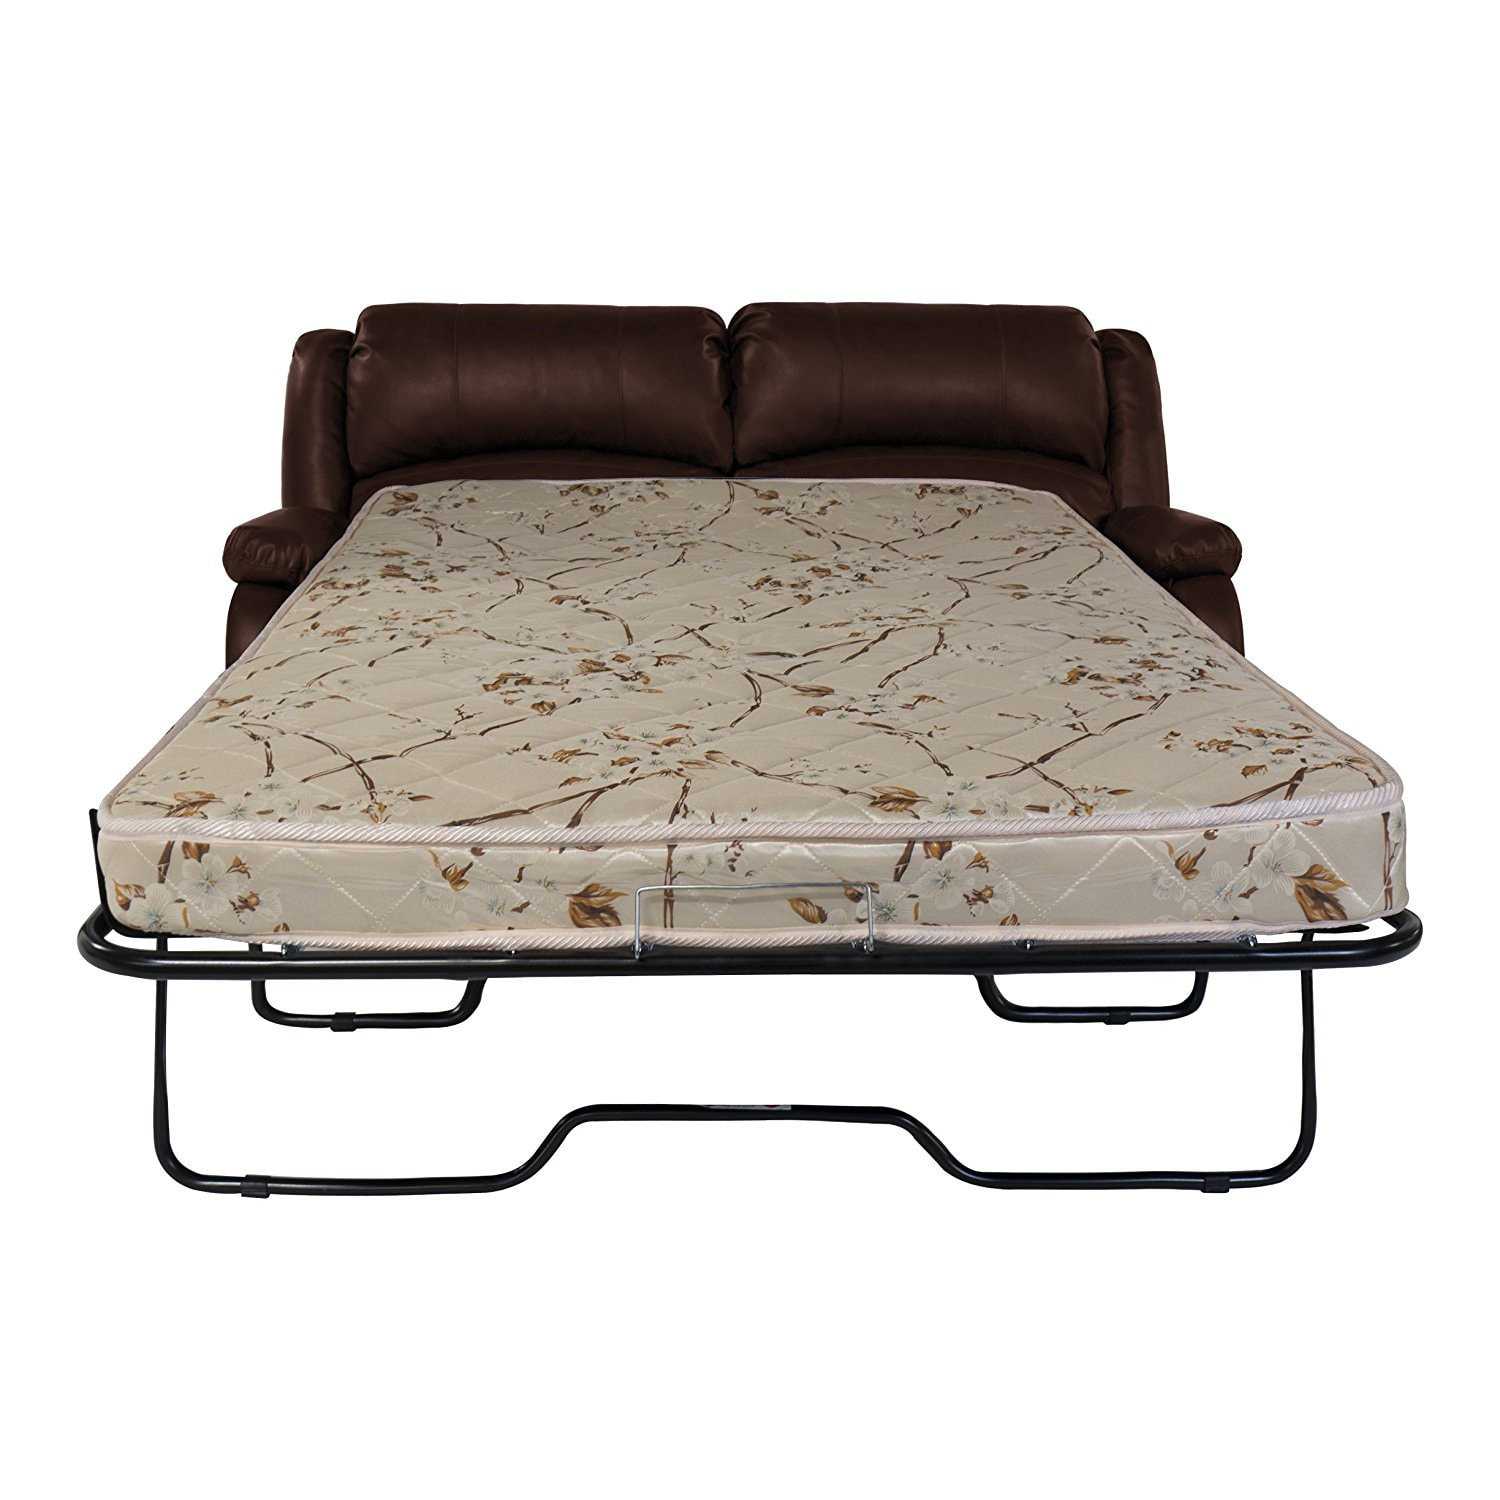 65 Quot Rv Sofa Sleeper W Hide A Bed Loveseat Brown